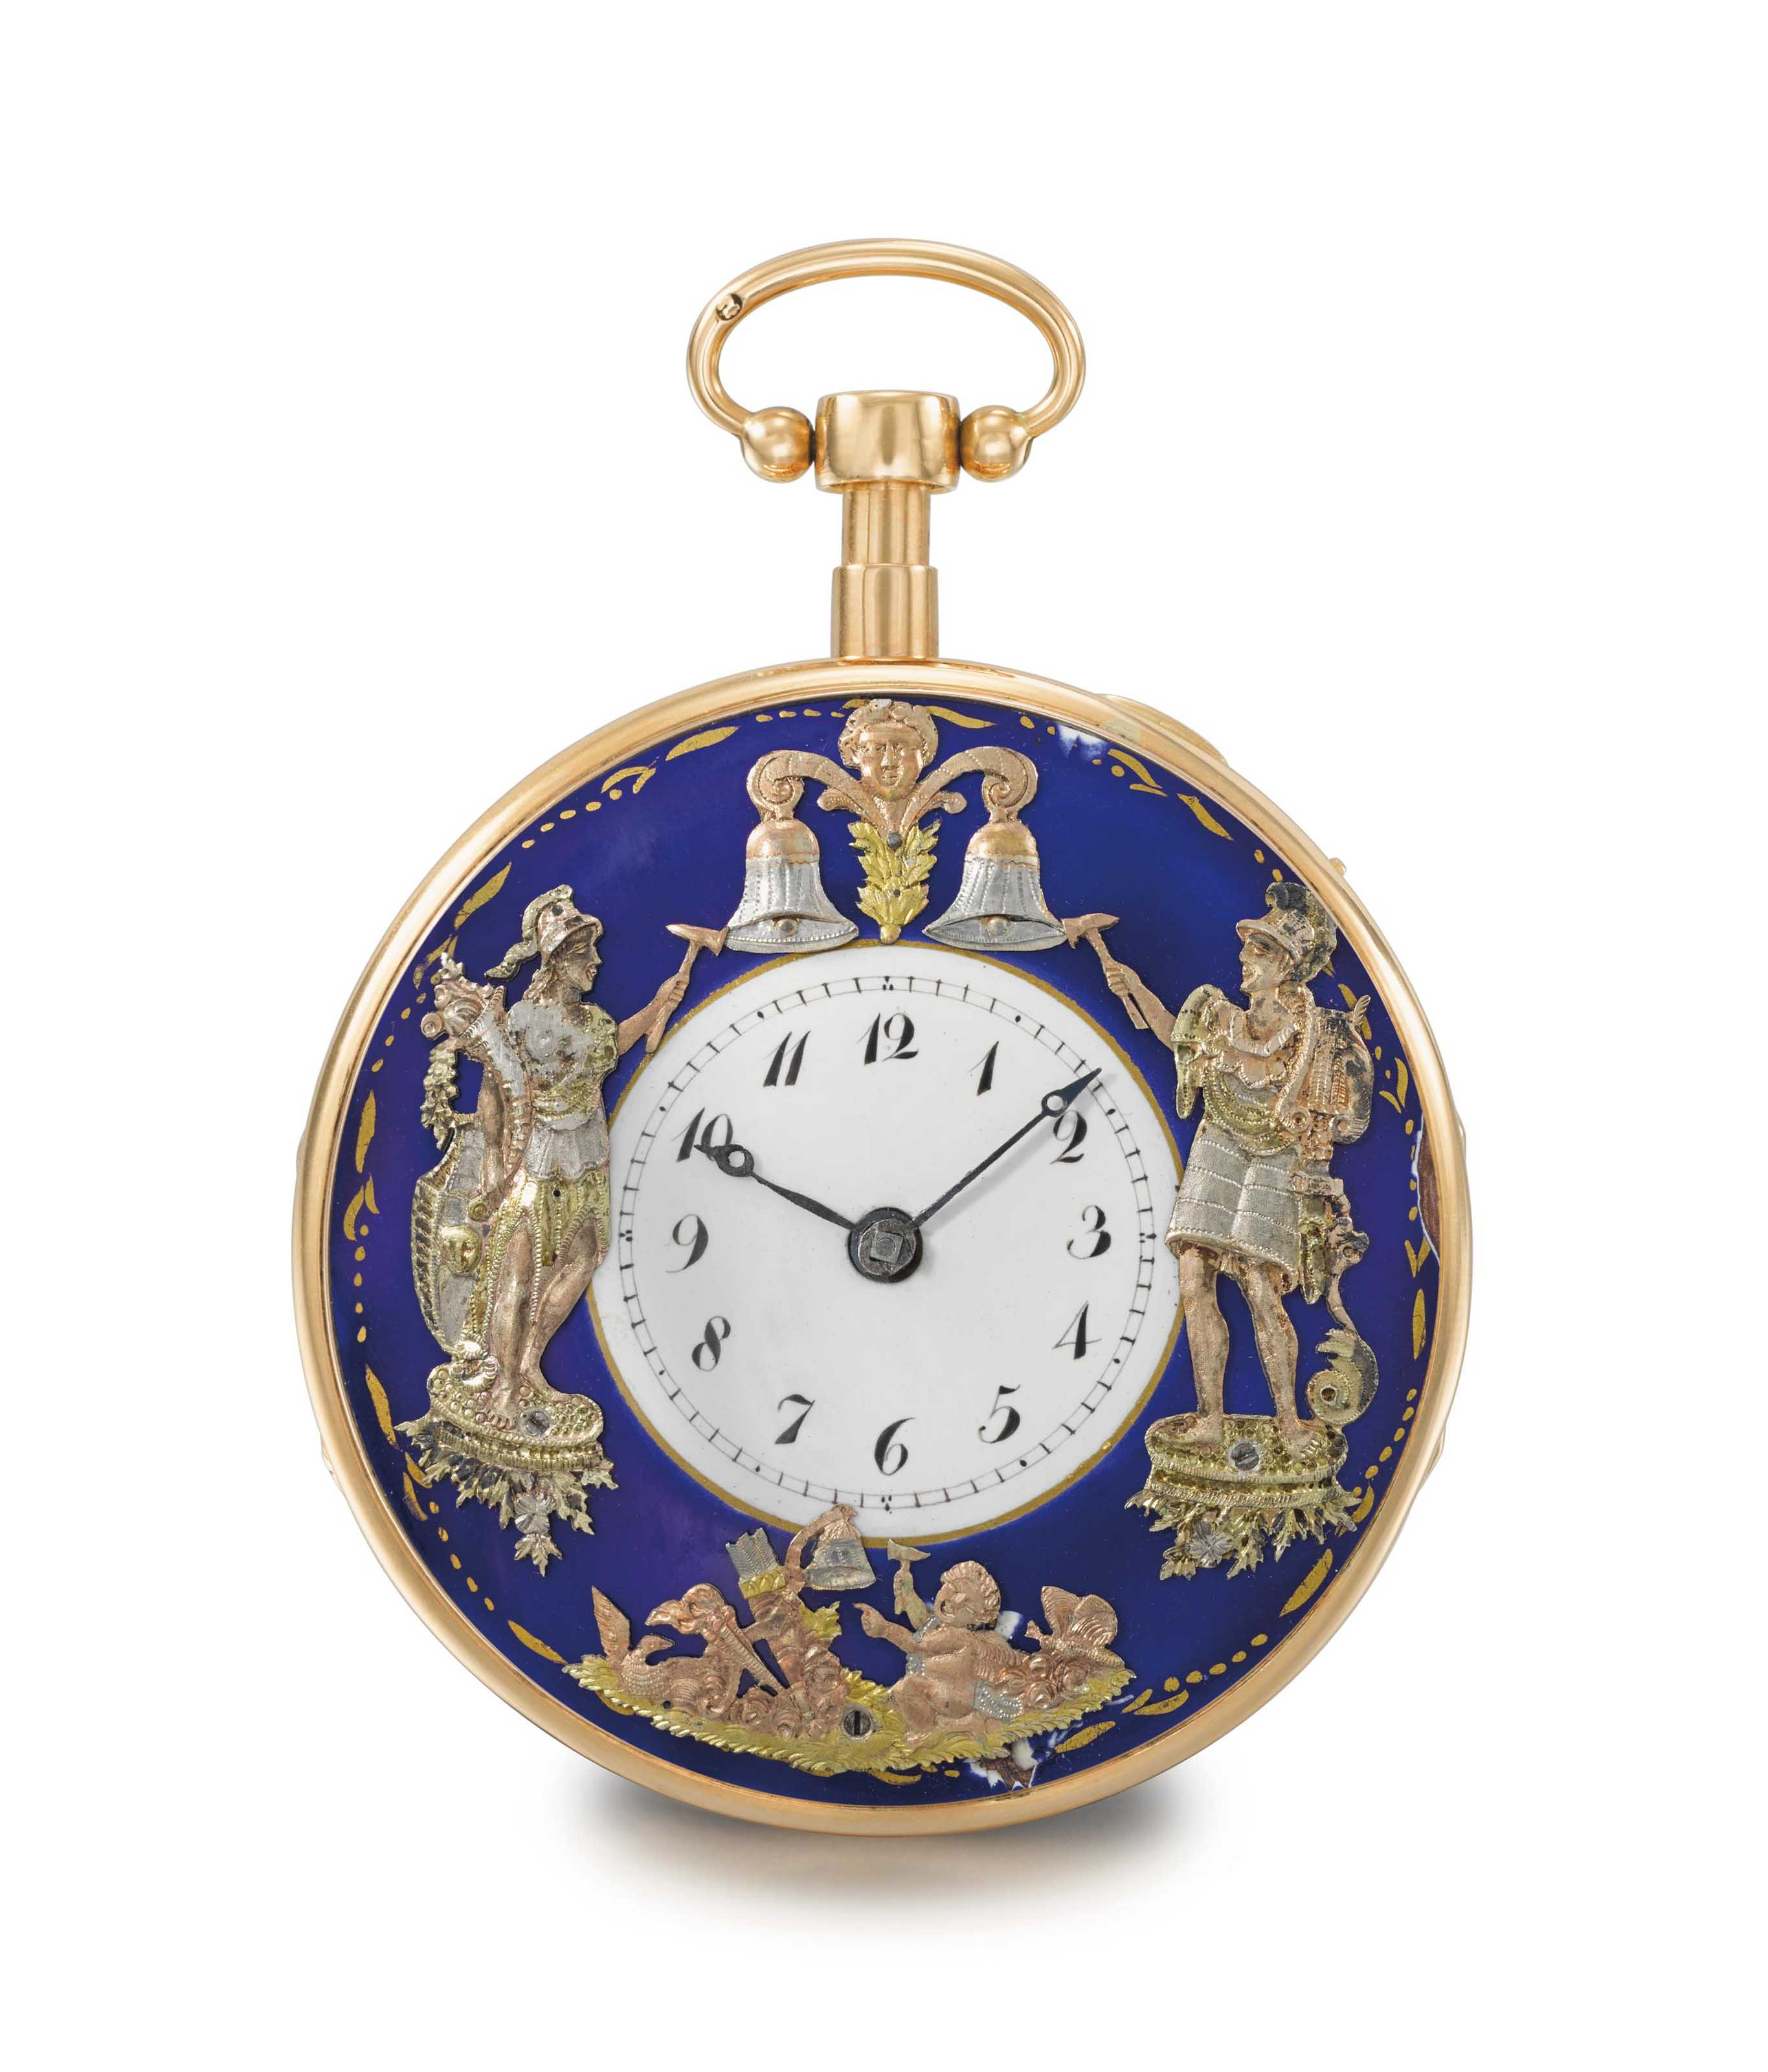 Ducommun. A fine and rare 18K gold quarter repeating verge watch with three jacquemarts